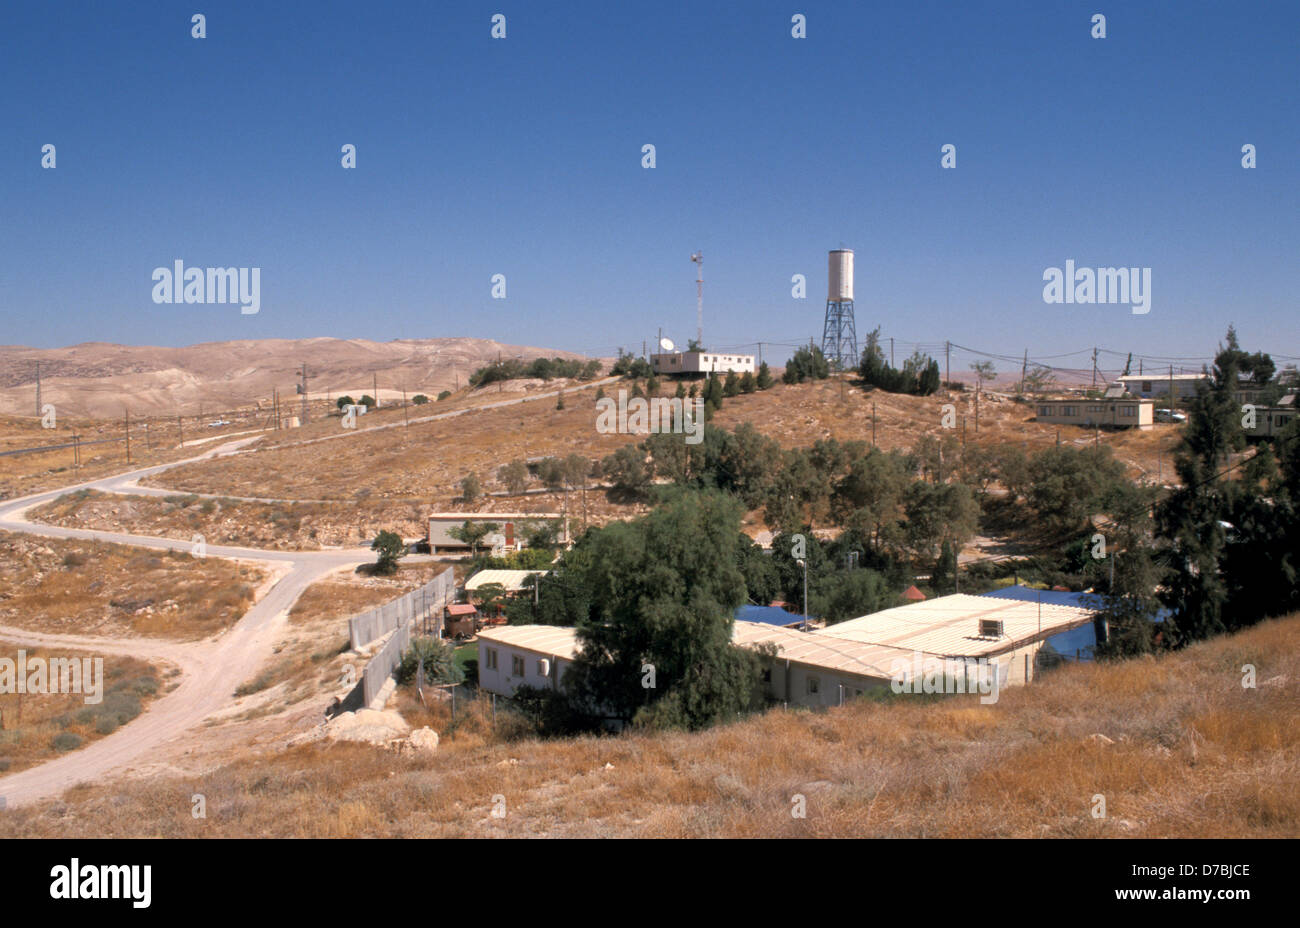 view of alon settlement in judea, 2003 - Stock Image